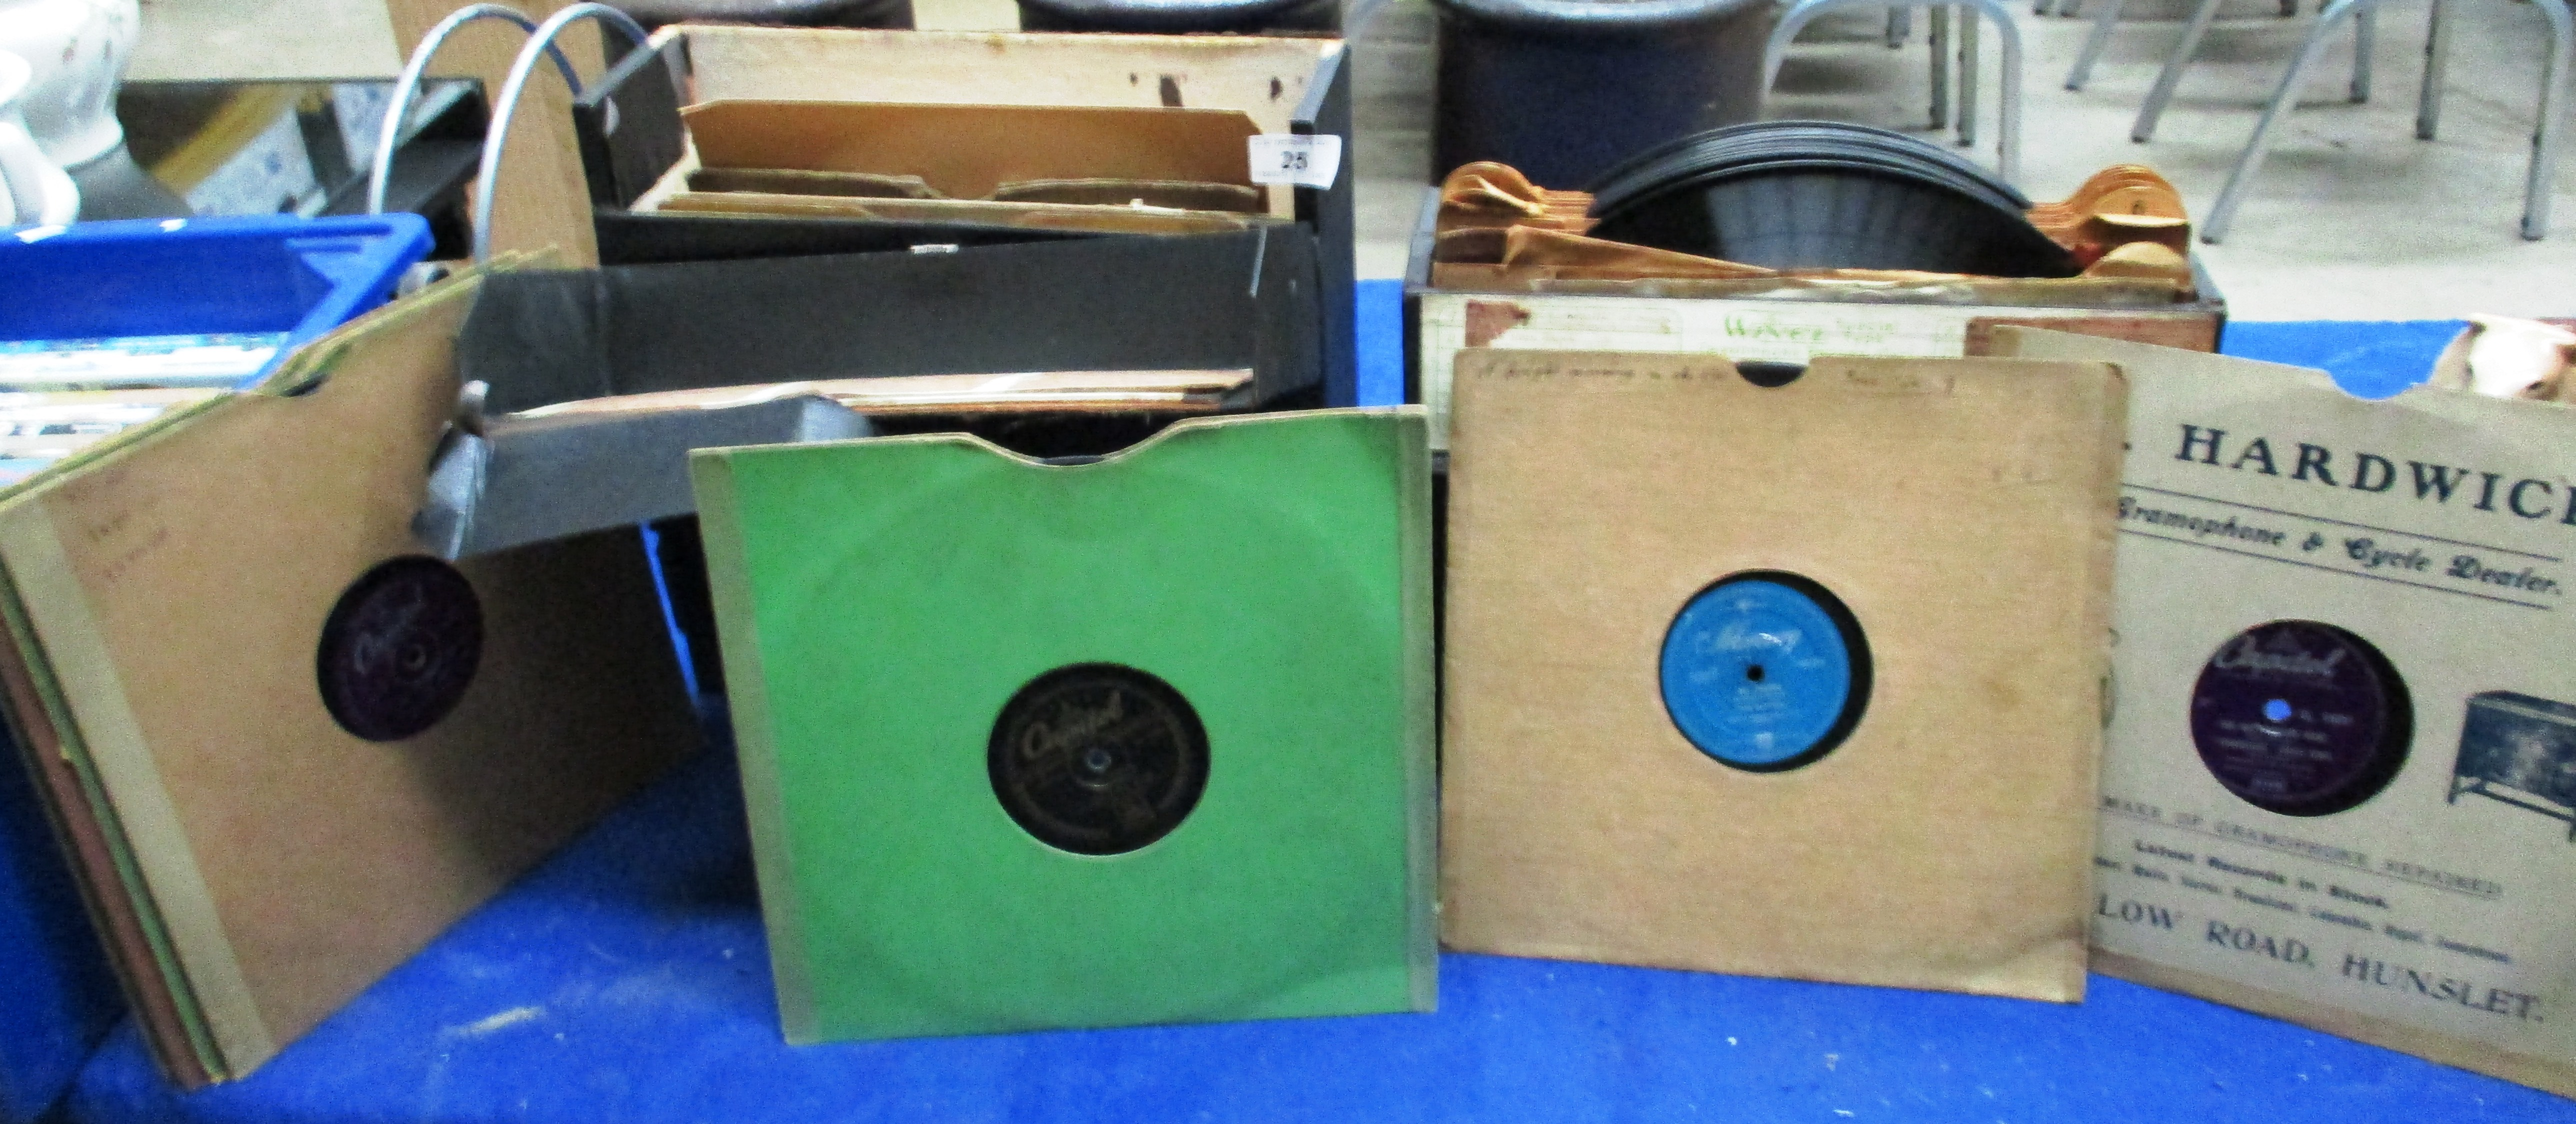 Lot 25 - Contents to 2 Gramaphone record cases - a quantity of 78rpm records - The Platters, Nat King Cole,